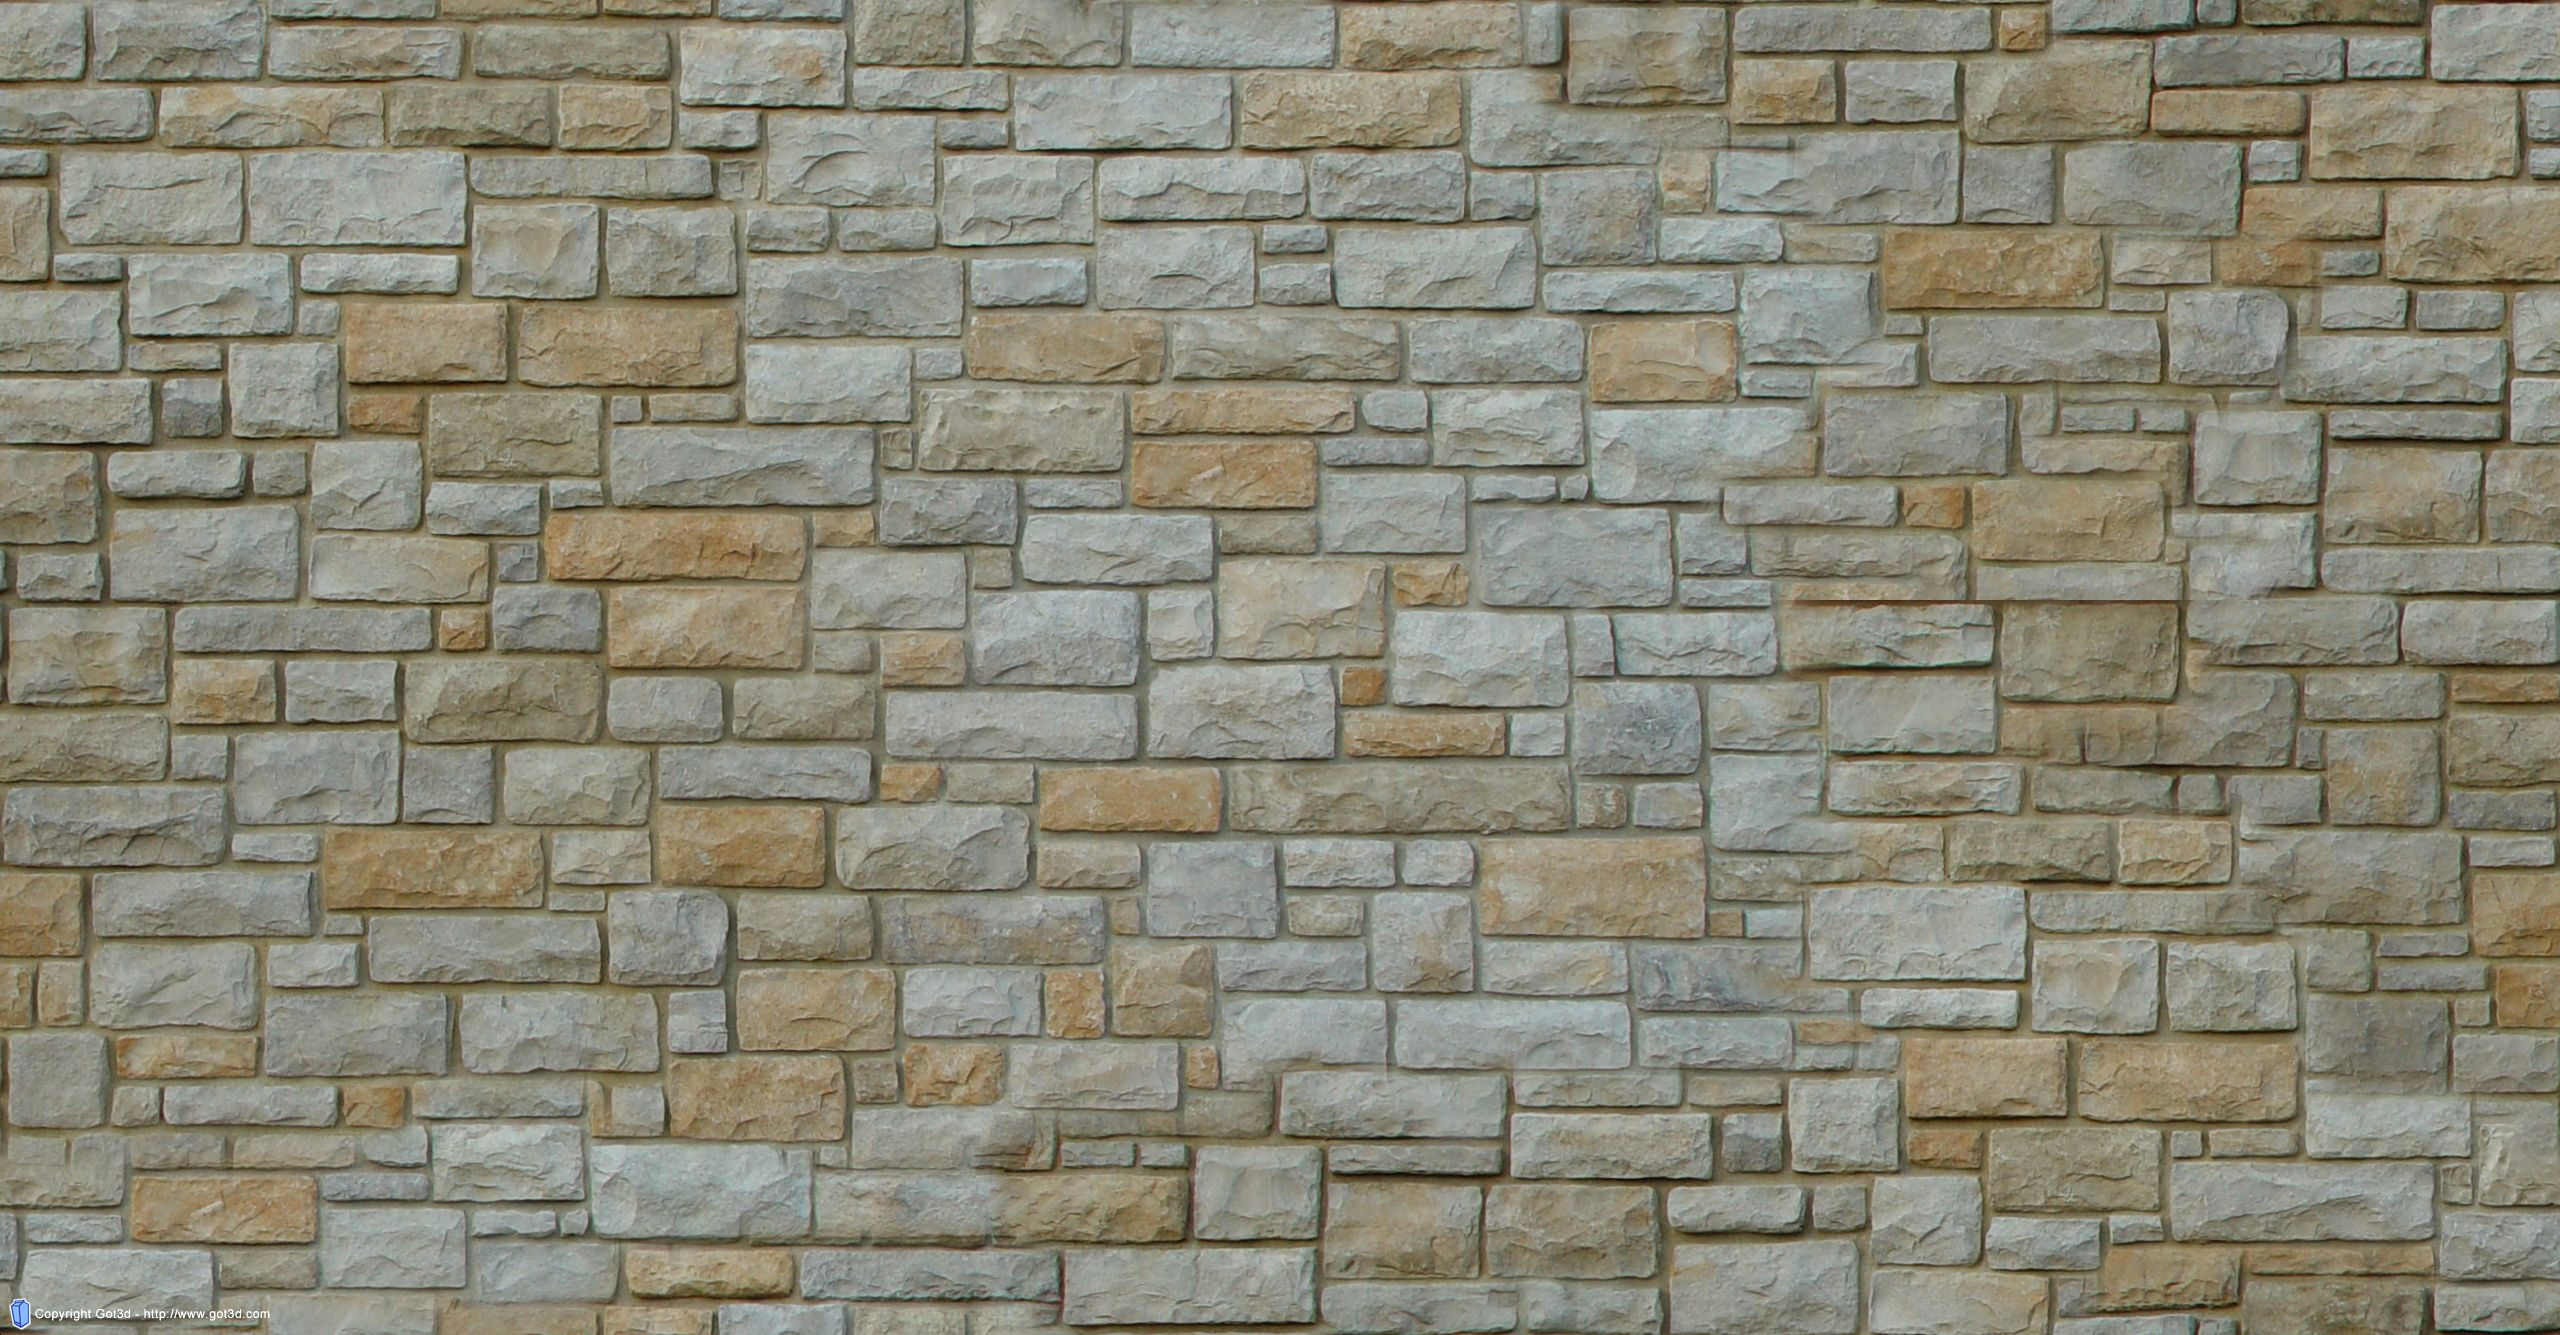 free-stone-wall-texture-002 | Texture & Patterns: Naturals, Neutrals ...